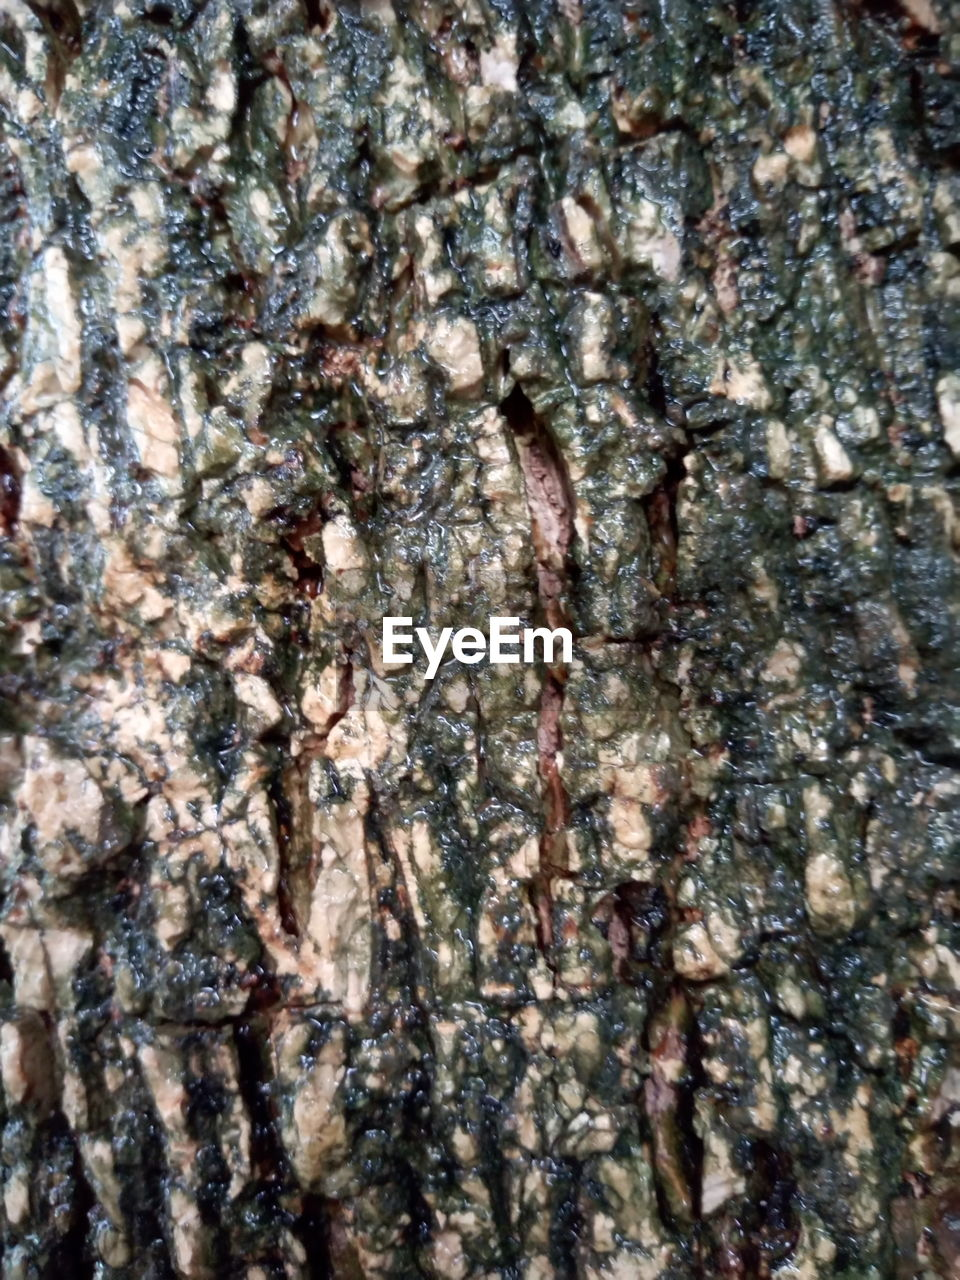 full frame, plant, tree, tree trunk, trunk, backgrounds, nature, no people, animal, close-up, textured, animal themes, outdoors, large group of animals, animals in the wild, group of animals, invertebrate, day, animal wildlife, insect, abstract backgrounds